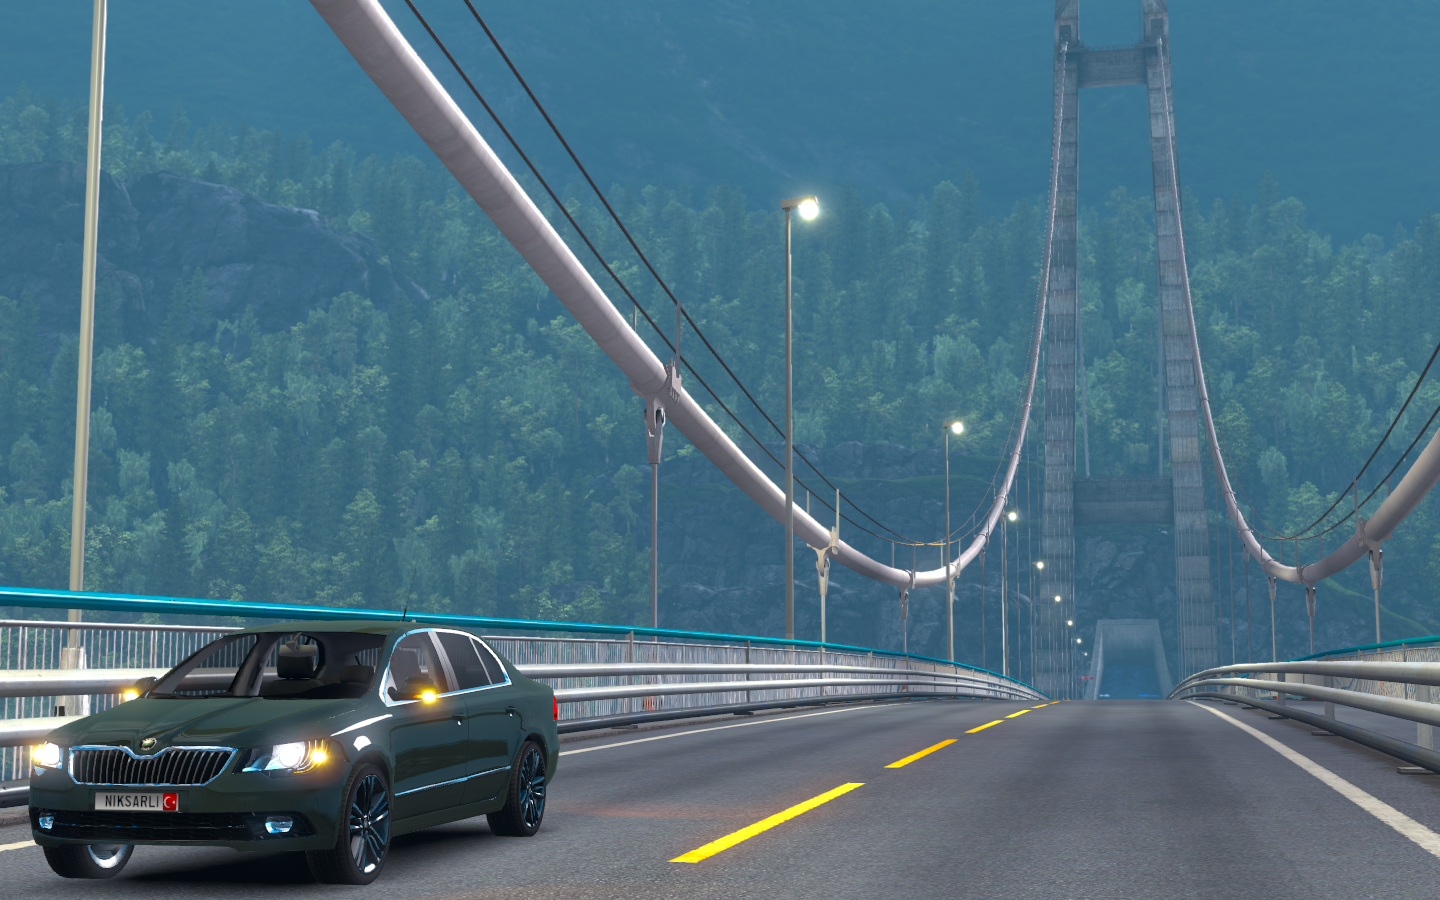 ets2_20190526_142908_00.png